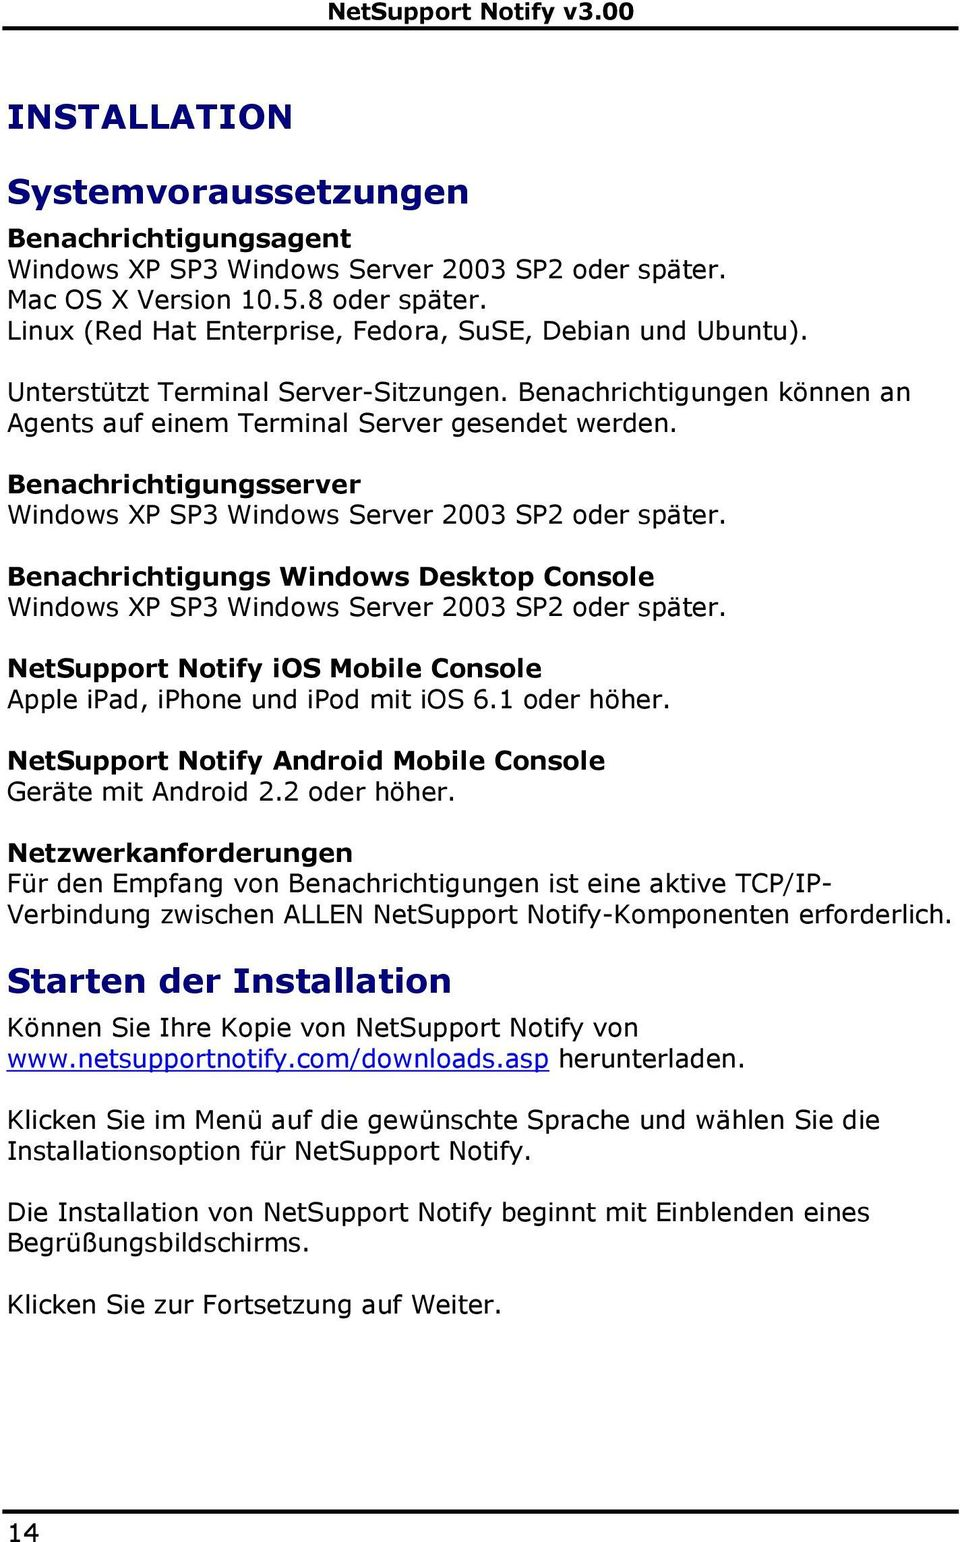 Benachrichtigungsserver Windows XP SP3 Windows Server 2003 SP2 oder später. Benachrichtigungs Windows Desktop Console Windows XP SP3 Windows Server 2003 SP2 oder später.